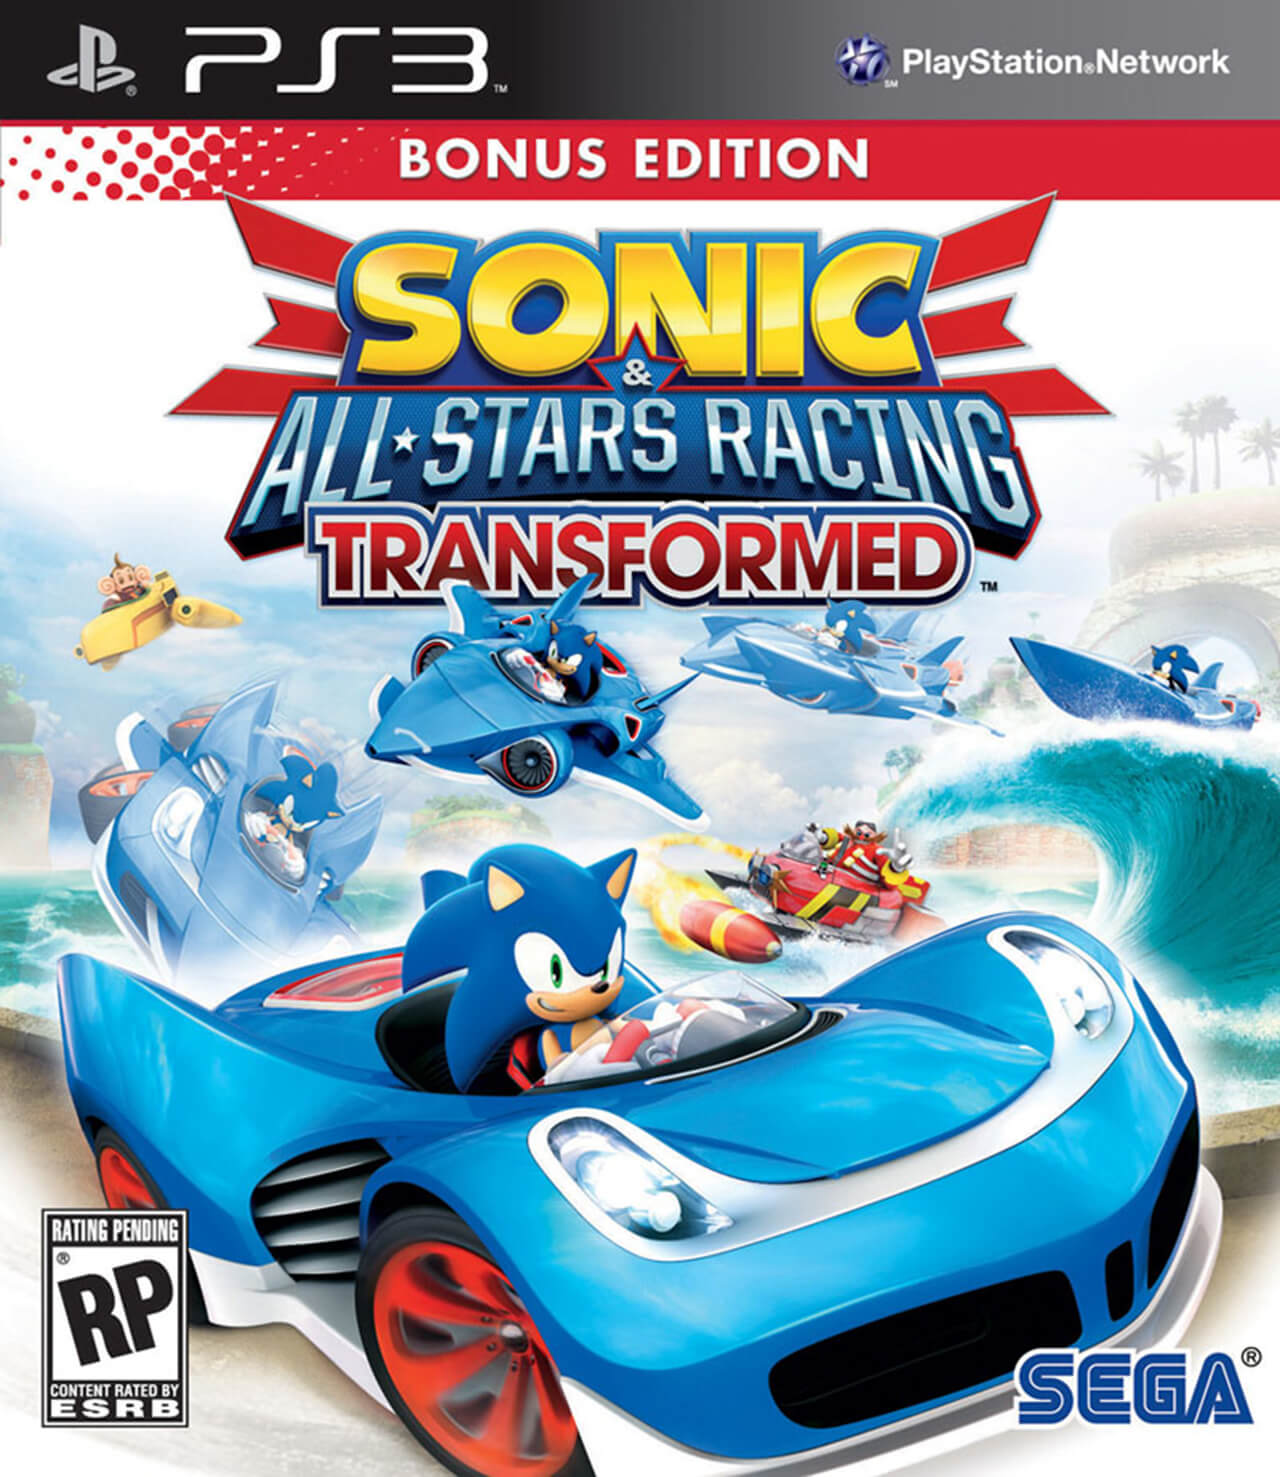 A computer Generated Image Of a Video Game Cover Featuring sonic the hedgehog in a car that has transformed from a boat and airplane